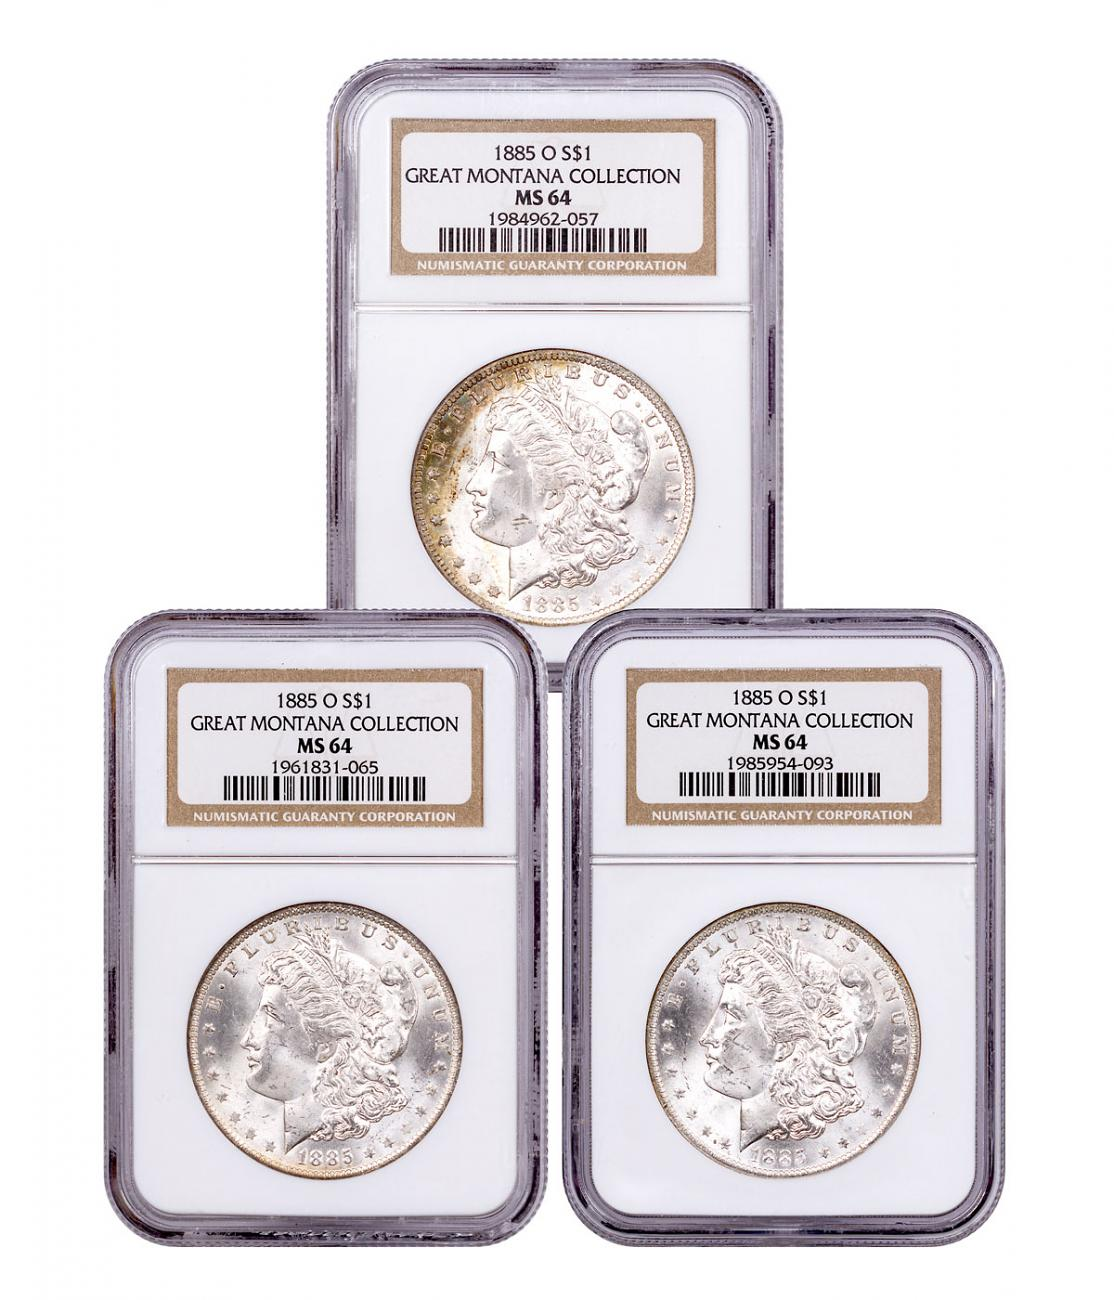 3-Coin Set - 1885-O Morgan Silver Dollar From the Great Montana Collection NGC MS64 Toned CPCR 2057